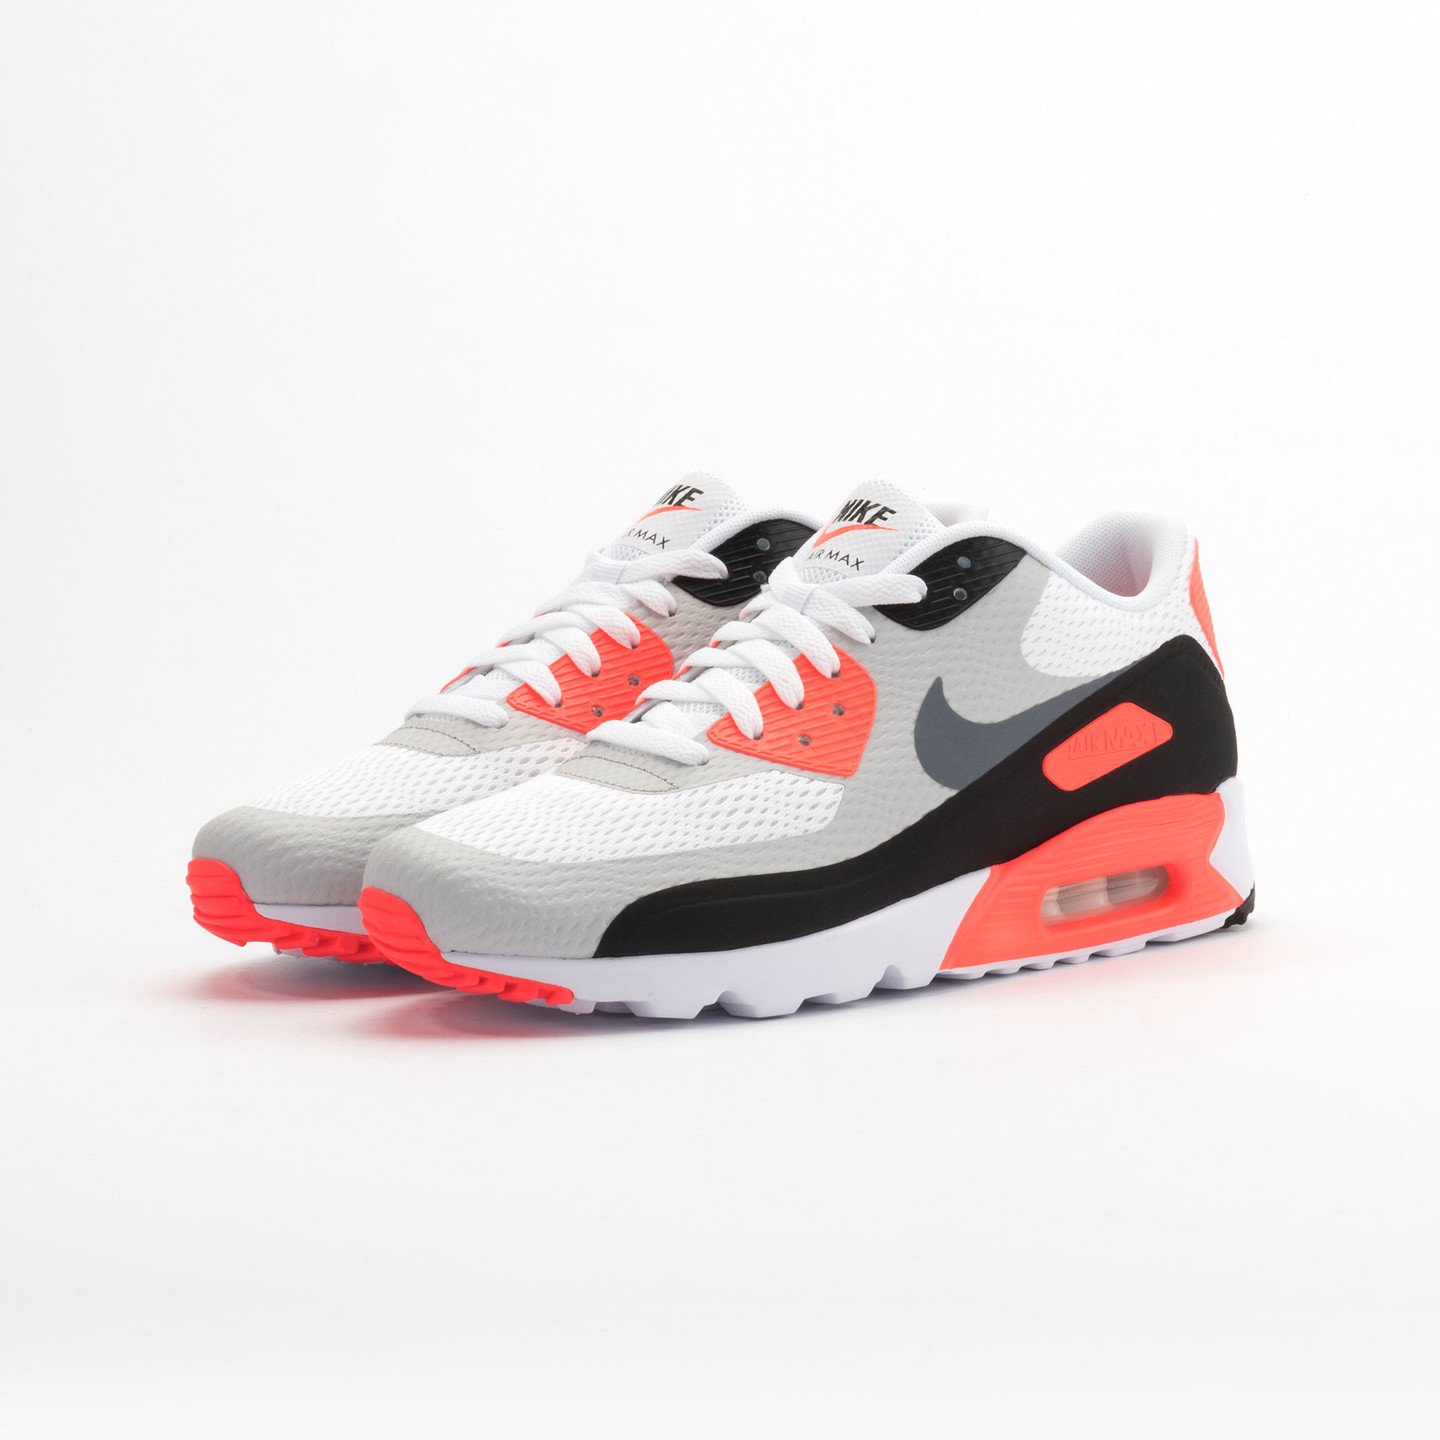 Nike Air Max 90 OG Essential White / Black / Infrared 819474-106-43